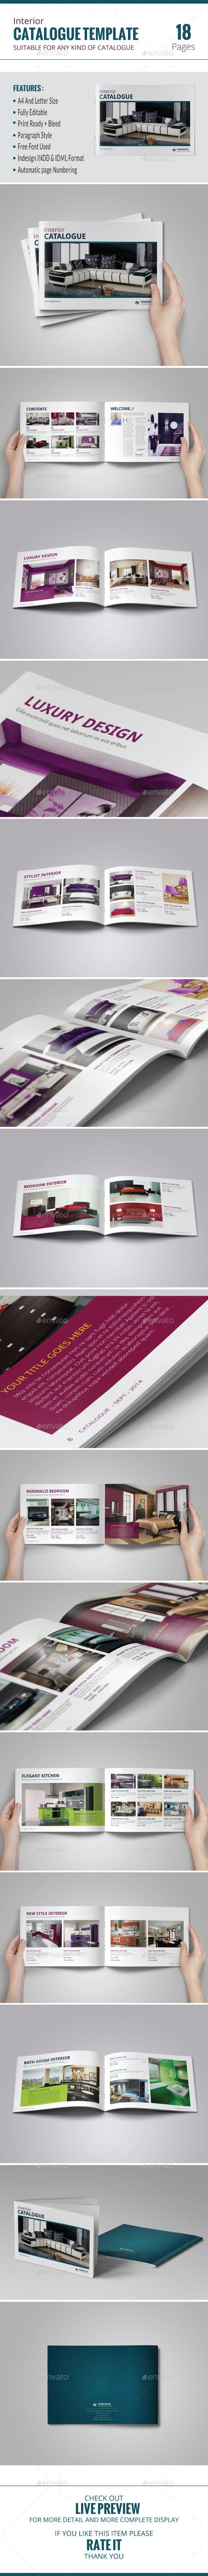 Catalog Template Vol. 02  http://graphicriver.net/item/catalog-template-vol-02/8881962?WT.ac=portfolio&WT.z_author=habageud